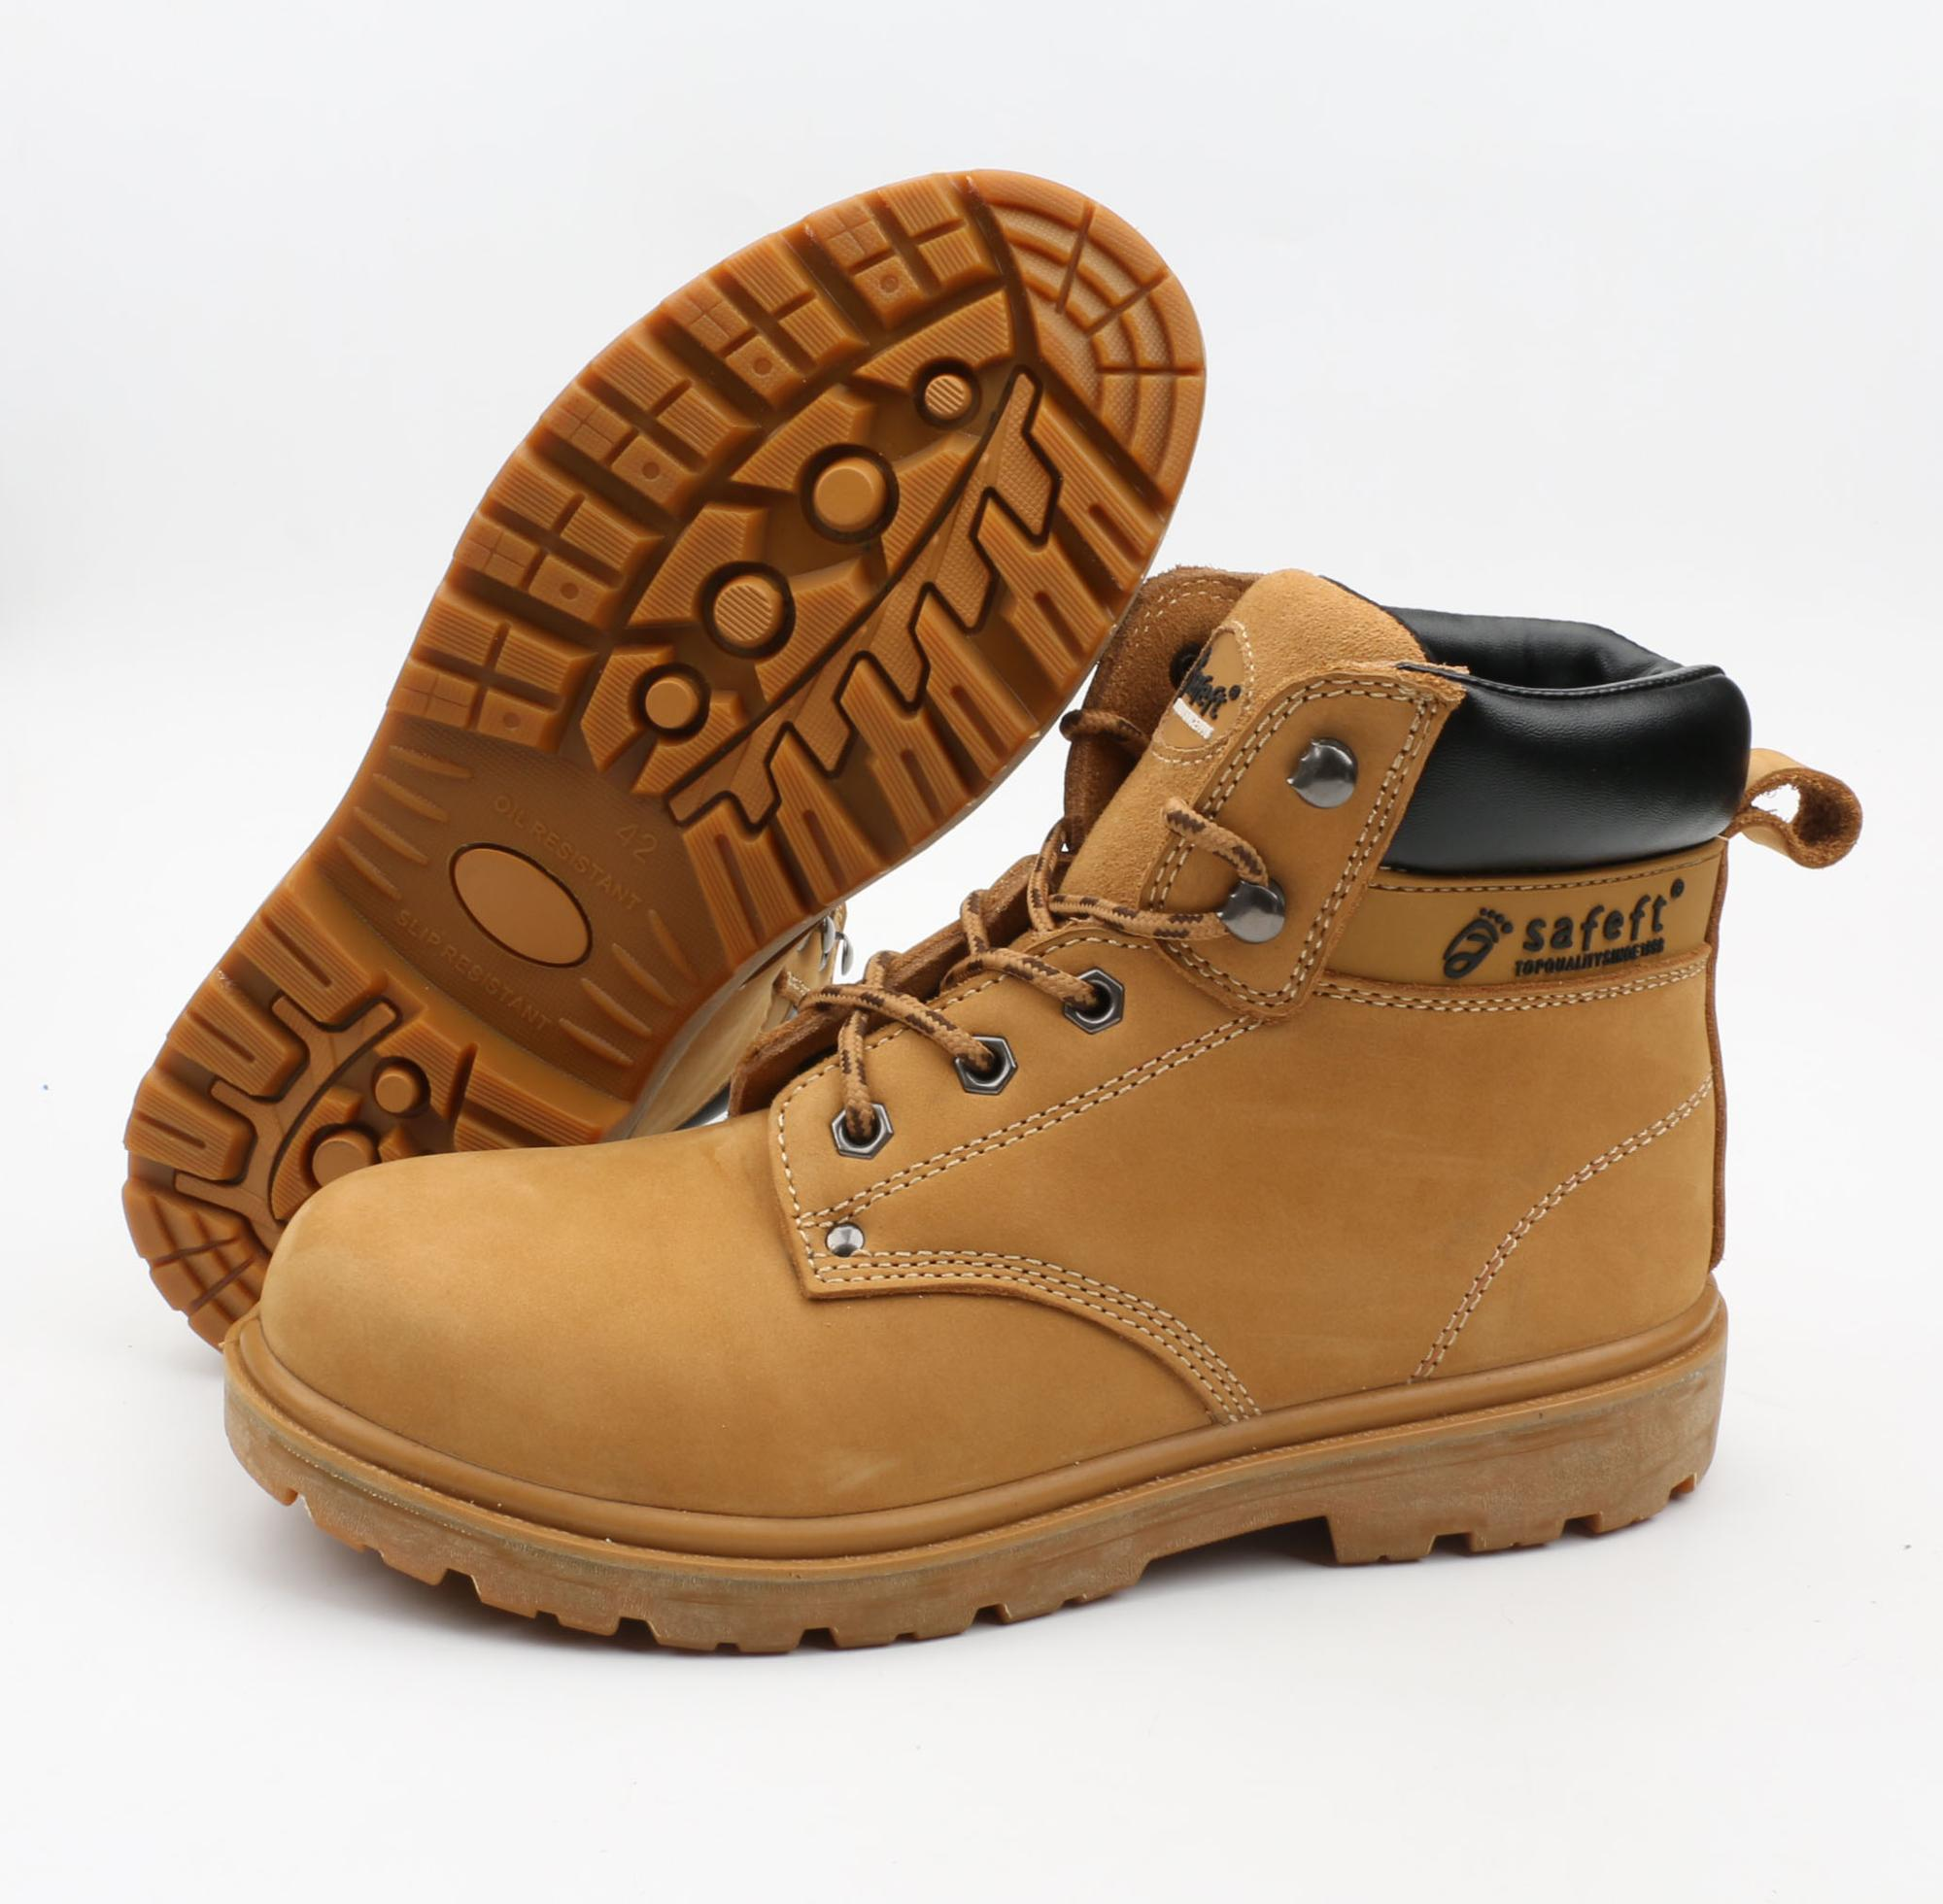 woodland price engineering working steel toe cap sb security safety shoes